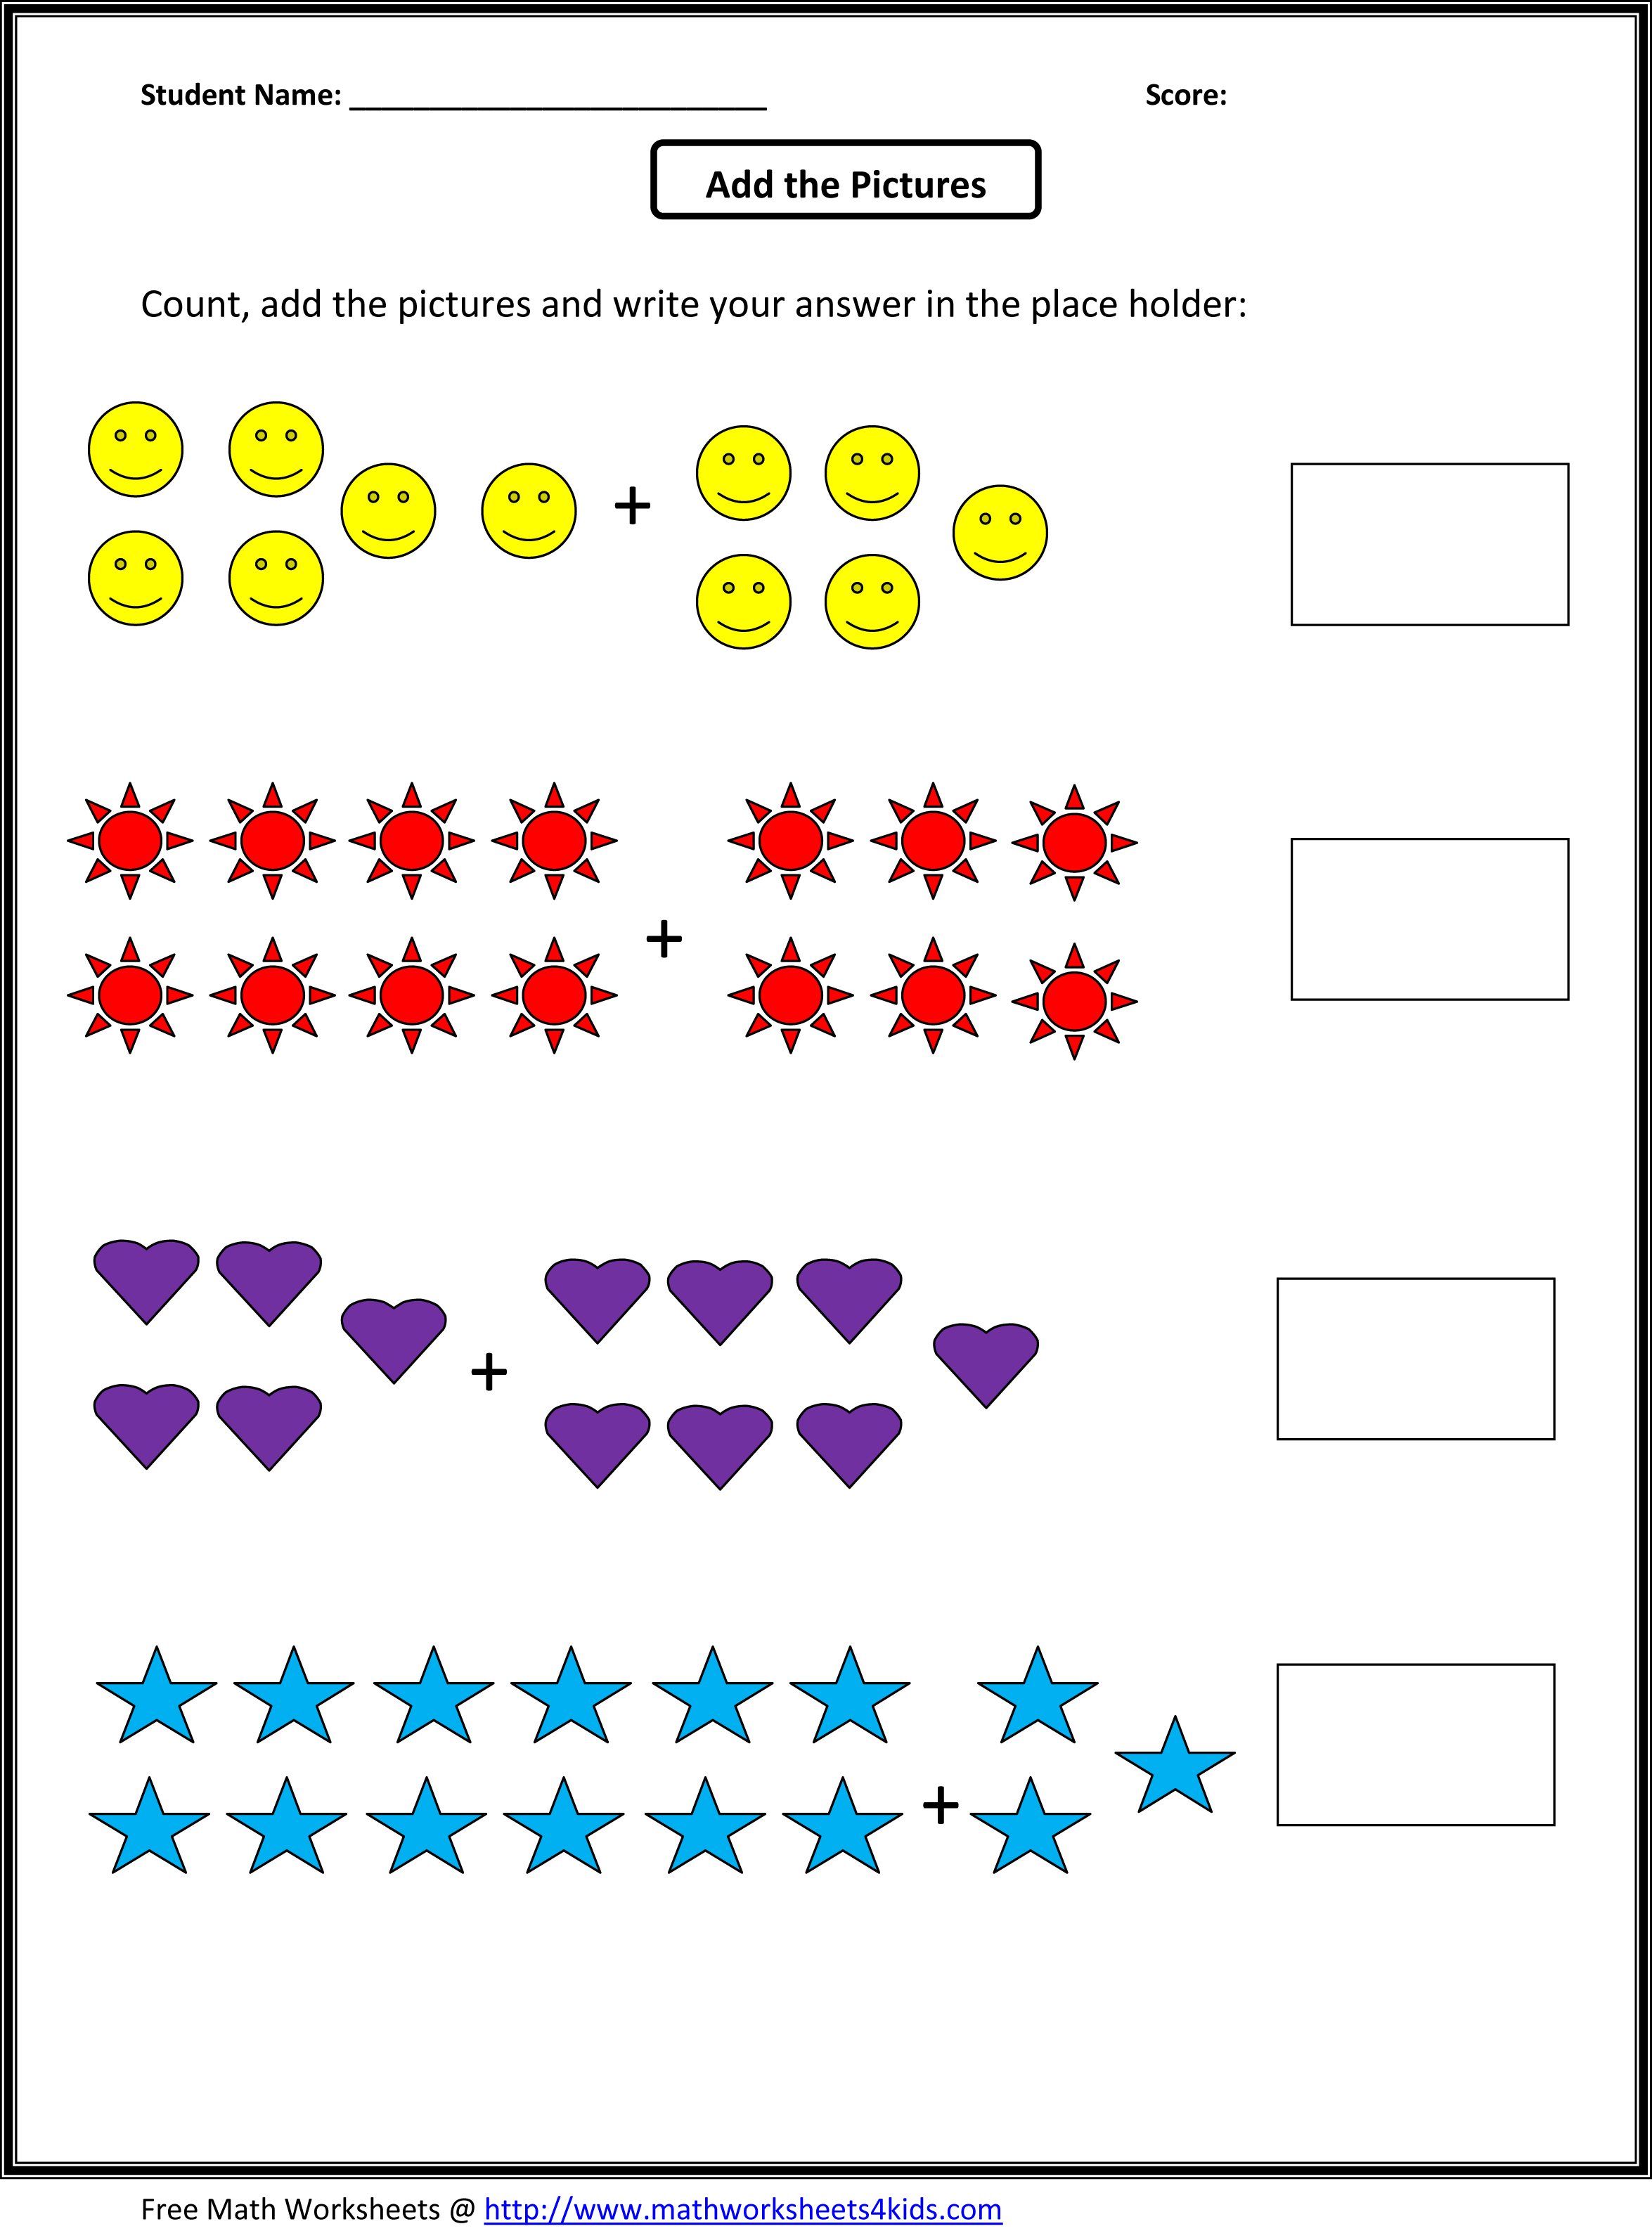 Weirdmailus  Unique Grade  Maths Worksheet  Reocurent With Licious Math Worksheets For St Grade Free  Reocurent With Archaic Adding And Subtracting Whole Numbers Worksheet Also Pearson Worksheet Answers In Addition The Boy In The Striped Pajamas Worksheets And Cognitive Worksheets For Adults As Well As Quadratic Equations Worksheet With Answers Additionally Antonym And Synonym Worksheets From Reocurentcom With Weirdmailus  Licious Grade  Maths Worksheet  Reocurent With Archaic Math Worksheets For St Grade Free  Reocurent And Unique Adding And Subtracting Whole Numbers Worksheet Also Pearson Worksheet Answers In Addition The Boy In The Striped Pajamas Worksheets From Reocurentcom